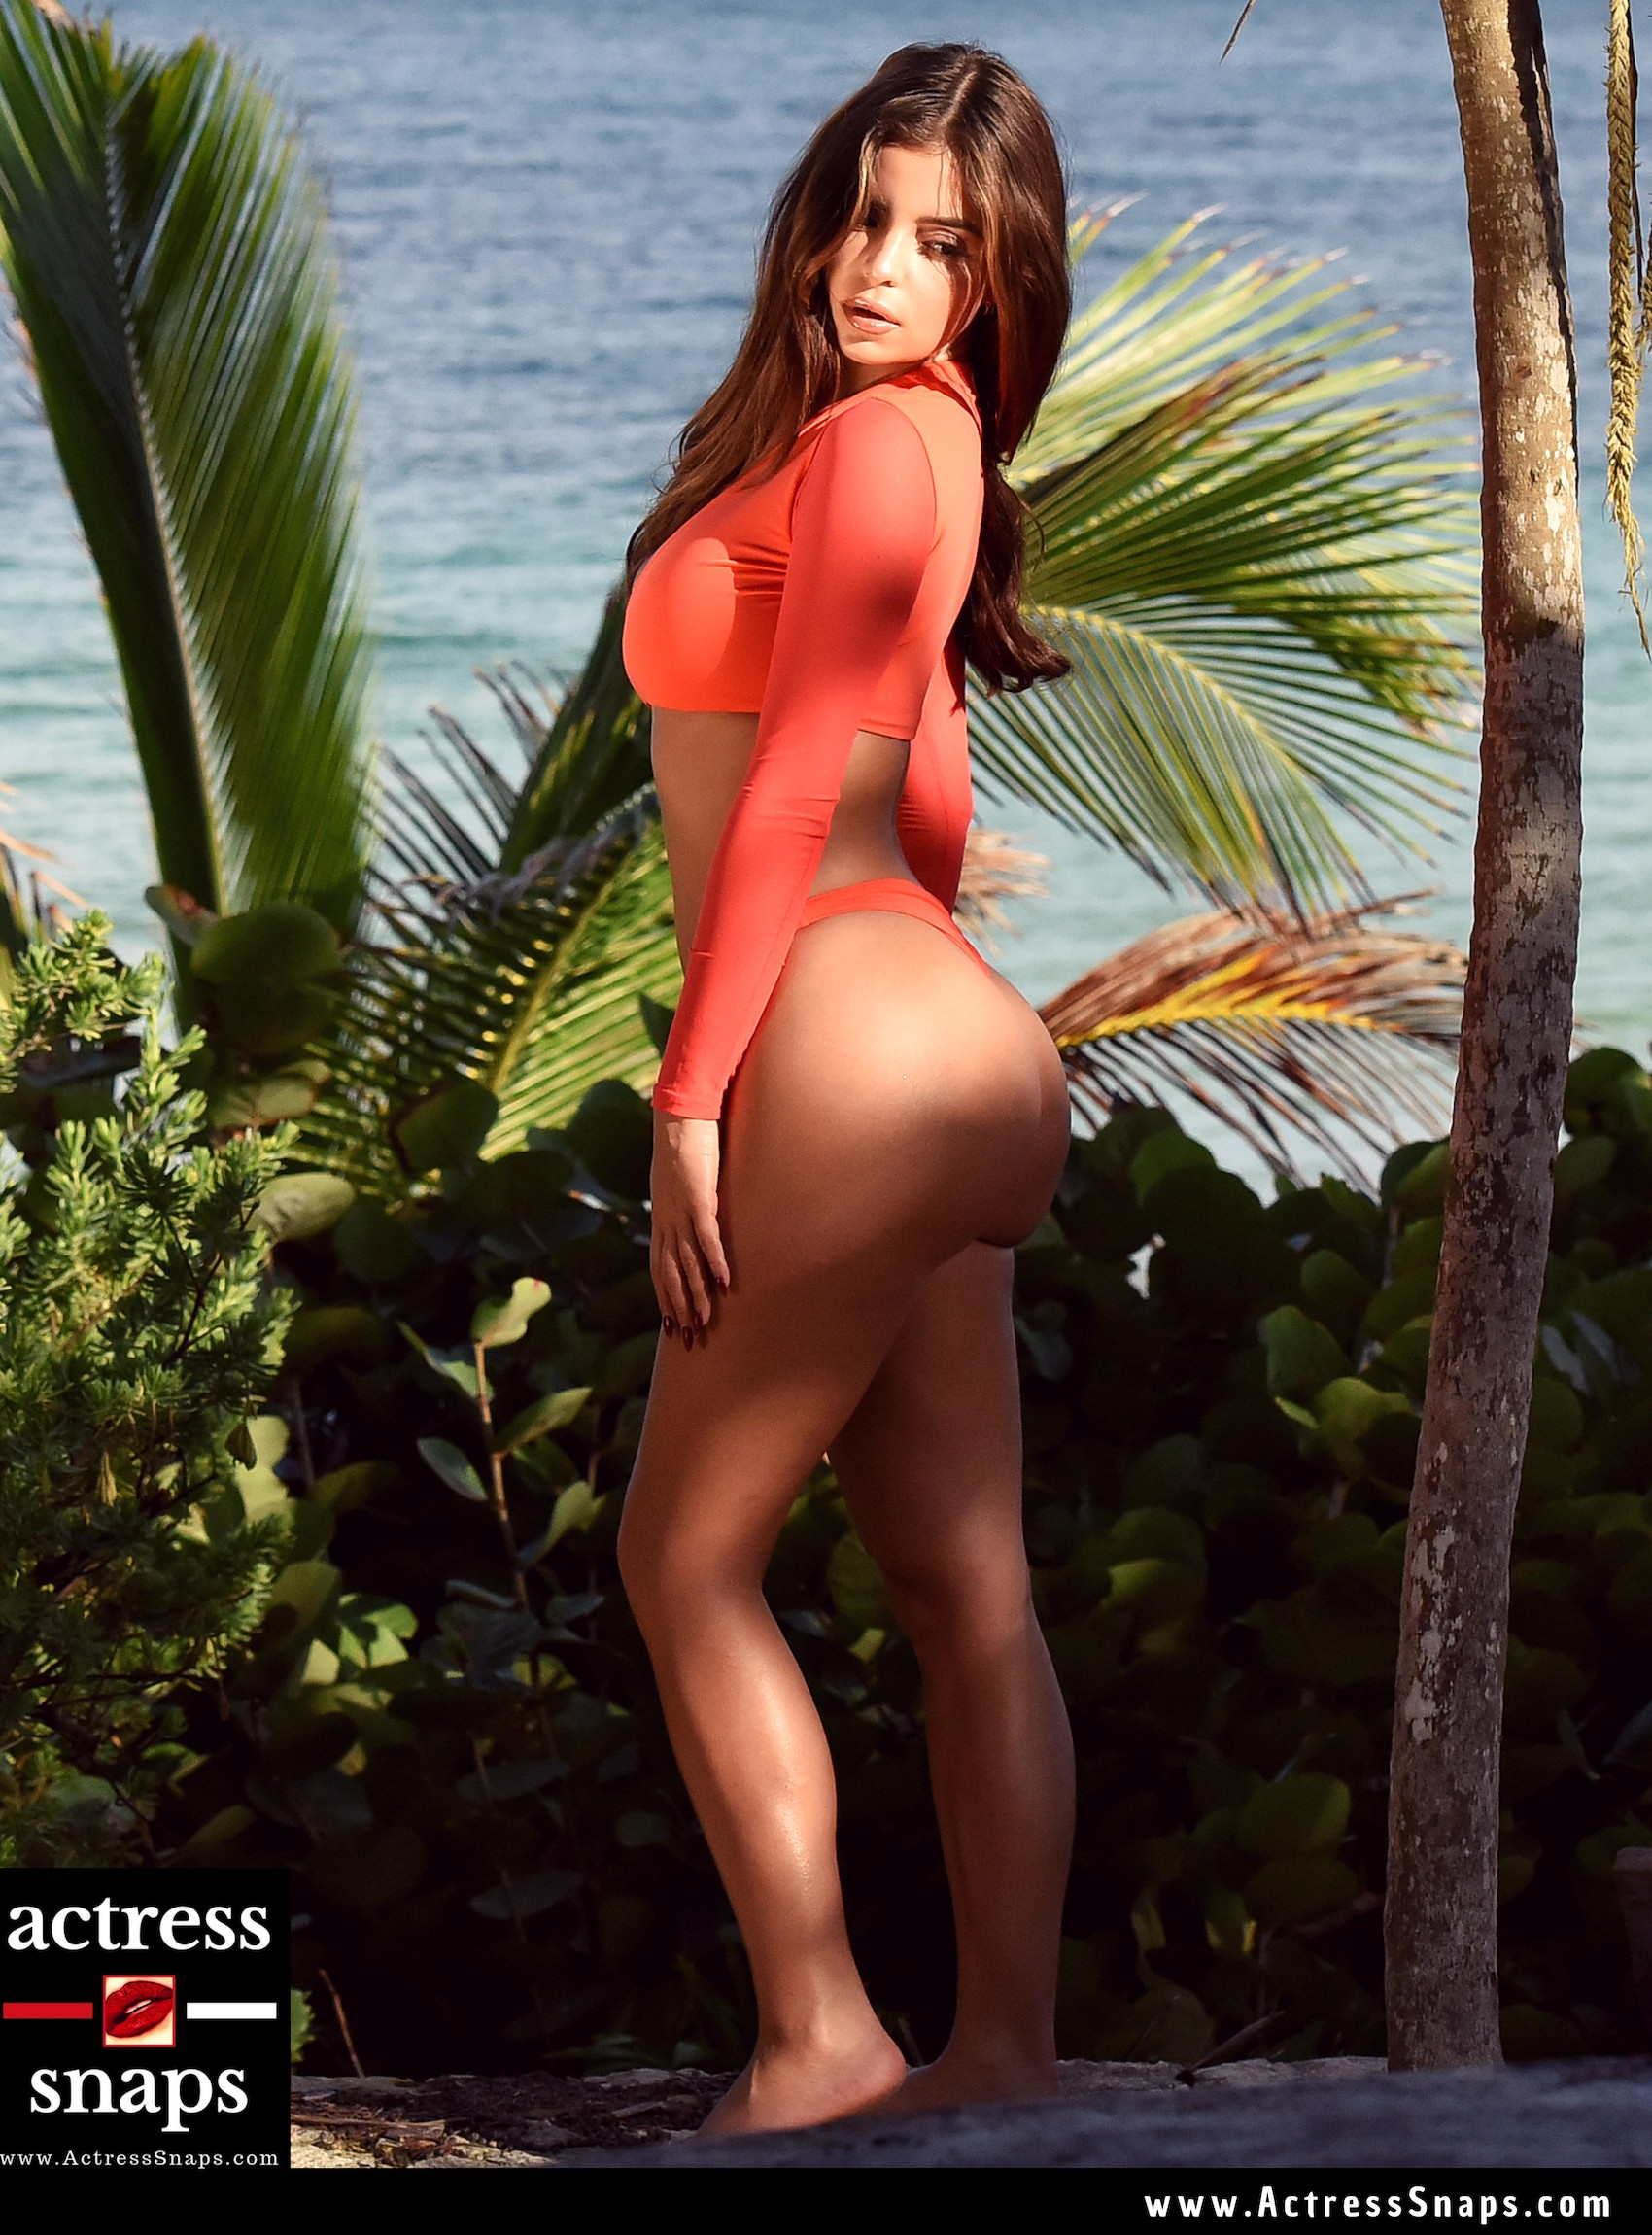 Demi Rose Mawby - Latest Photo Shoot - Sexy Actress Pictures | Hot Actress Pictures - ActressSnaps.com